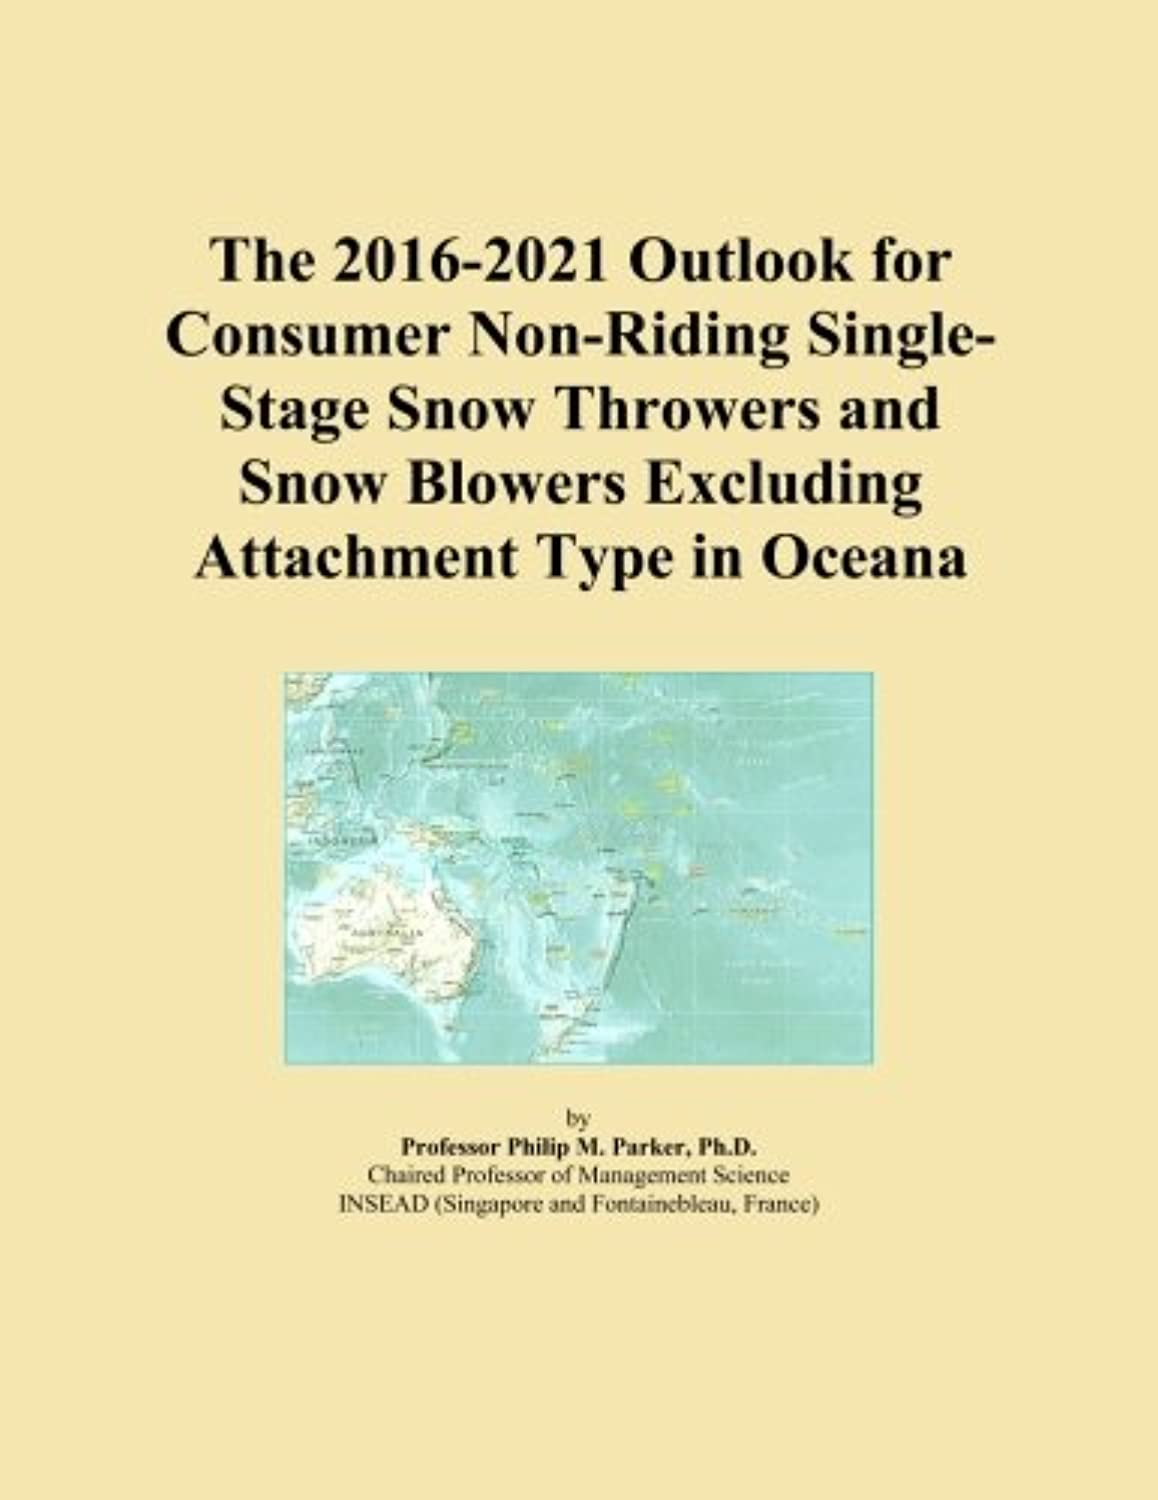 The 2016-2021 Outlook for Consumer Non-Riding Single-Stage Snow Throwers and Snow Blowers Excluding Attachment Type in Oceana